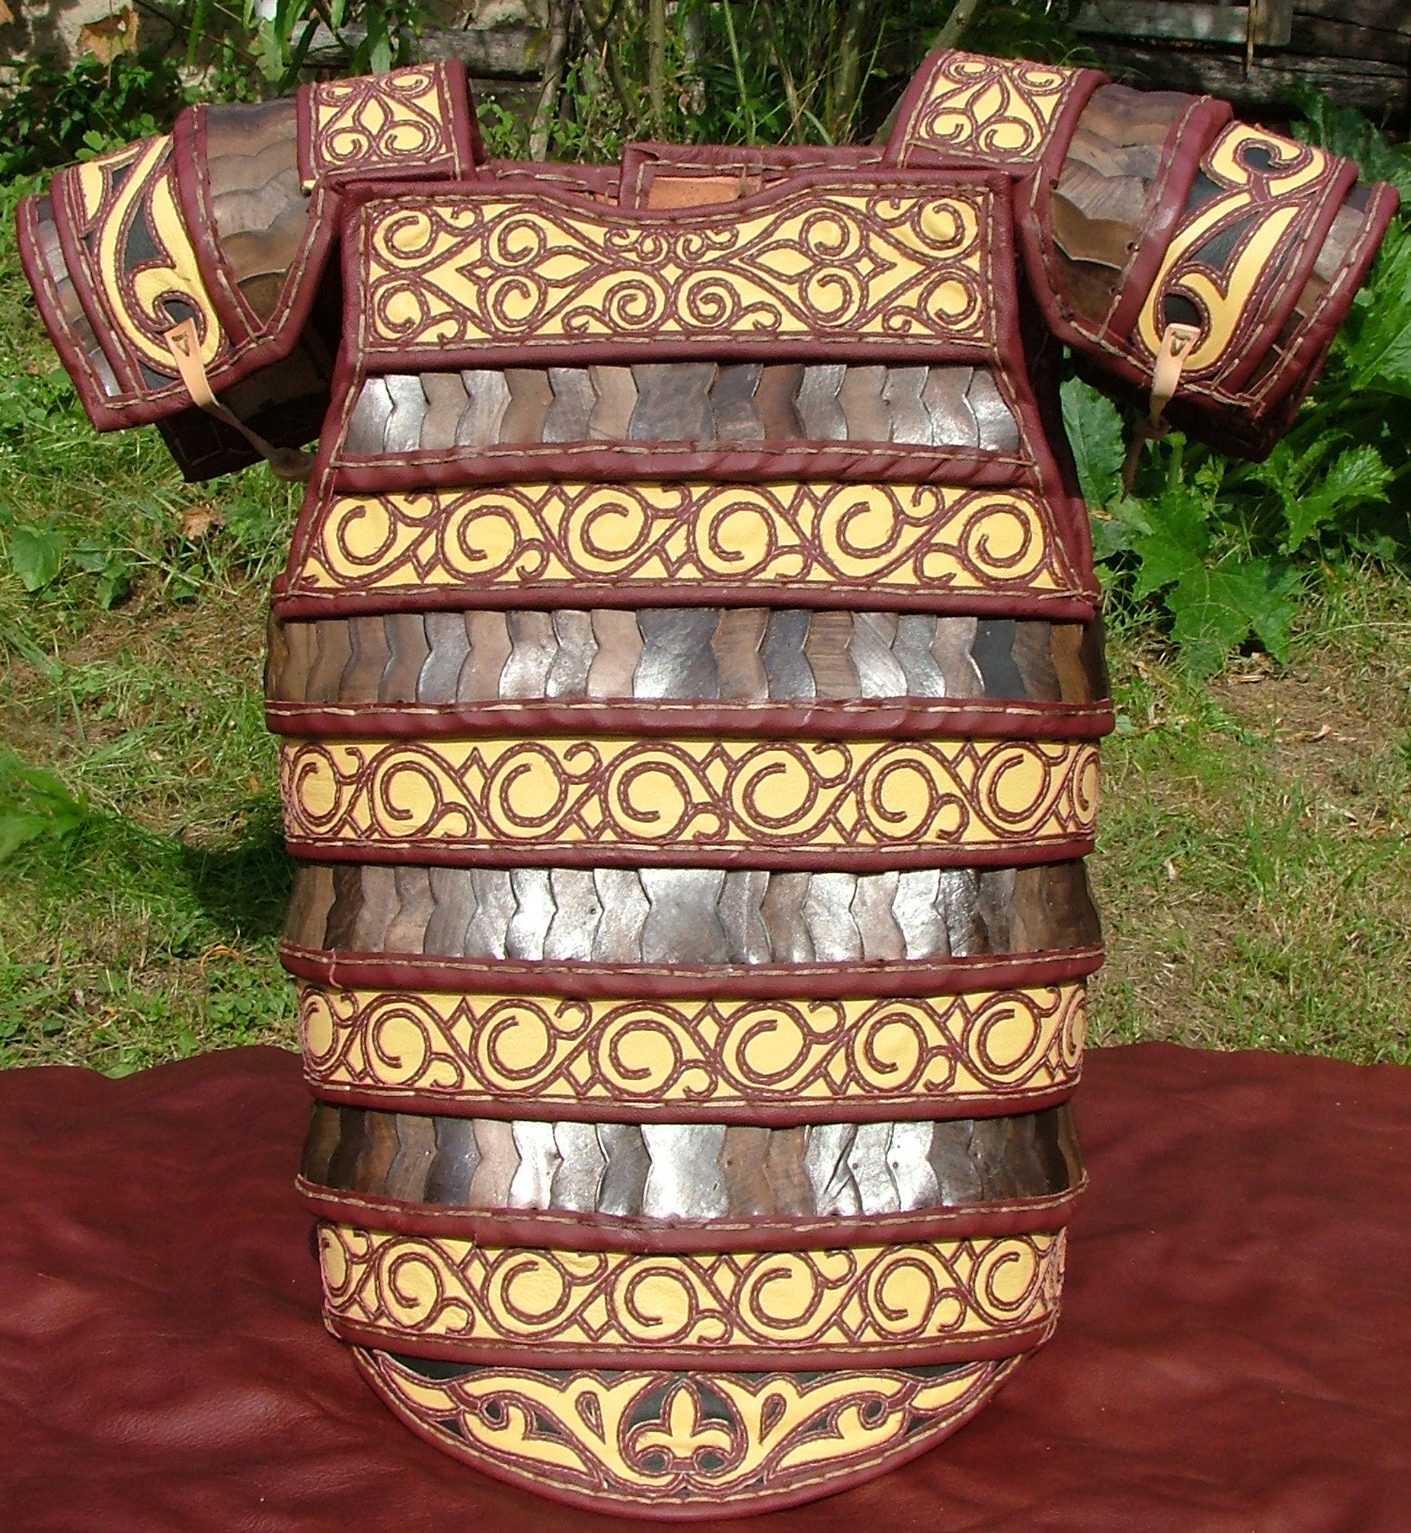 Richly decorated medieval cuirass.